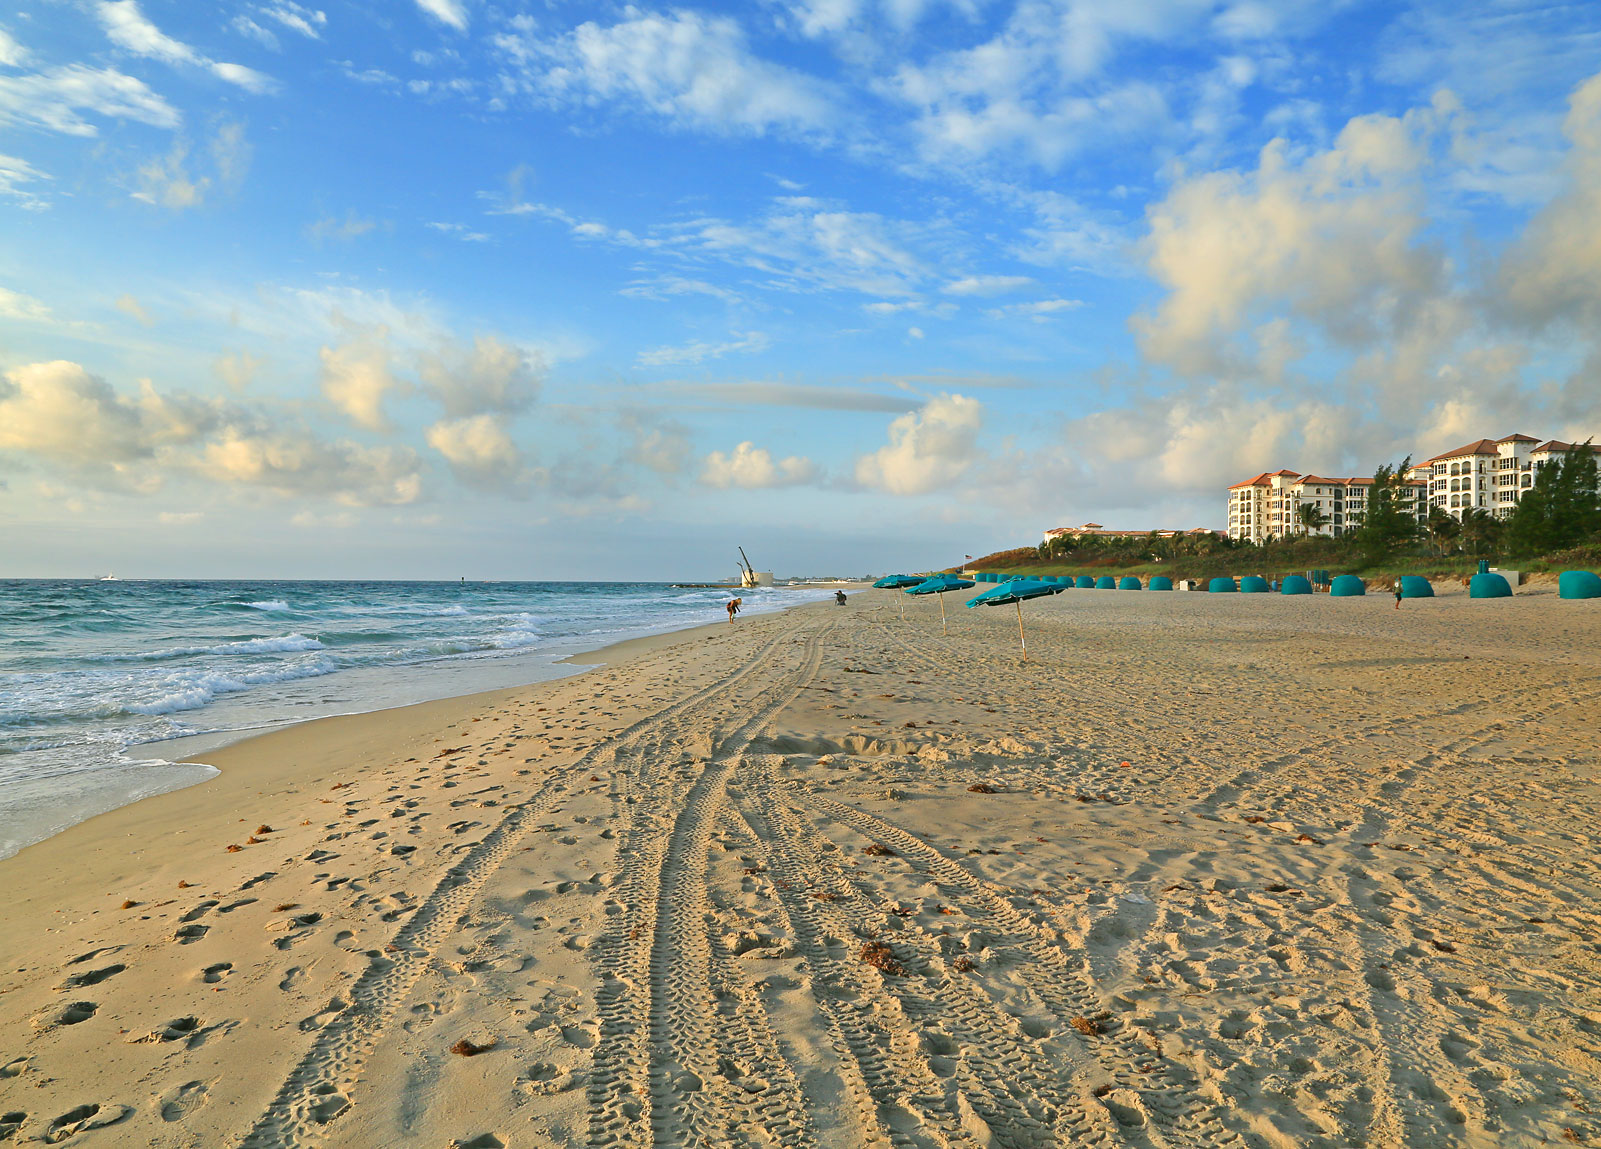 Singer Island Hotels And Resorts